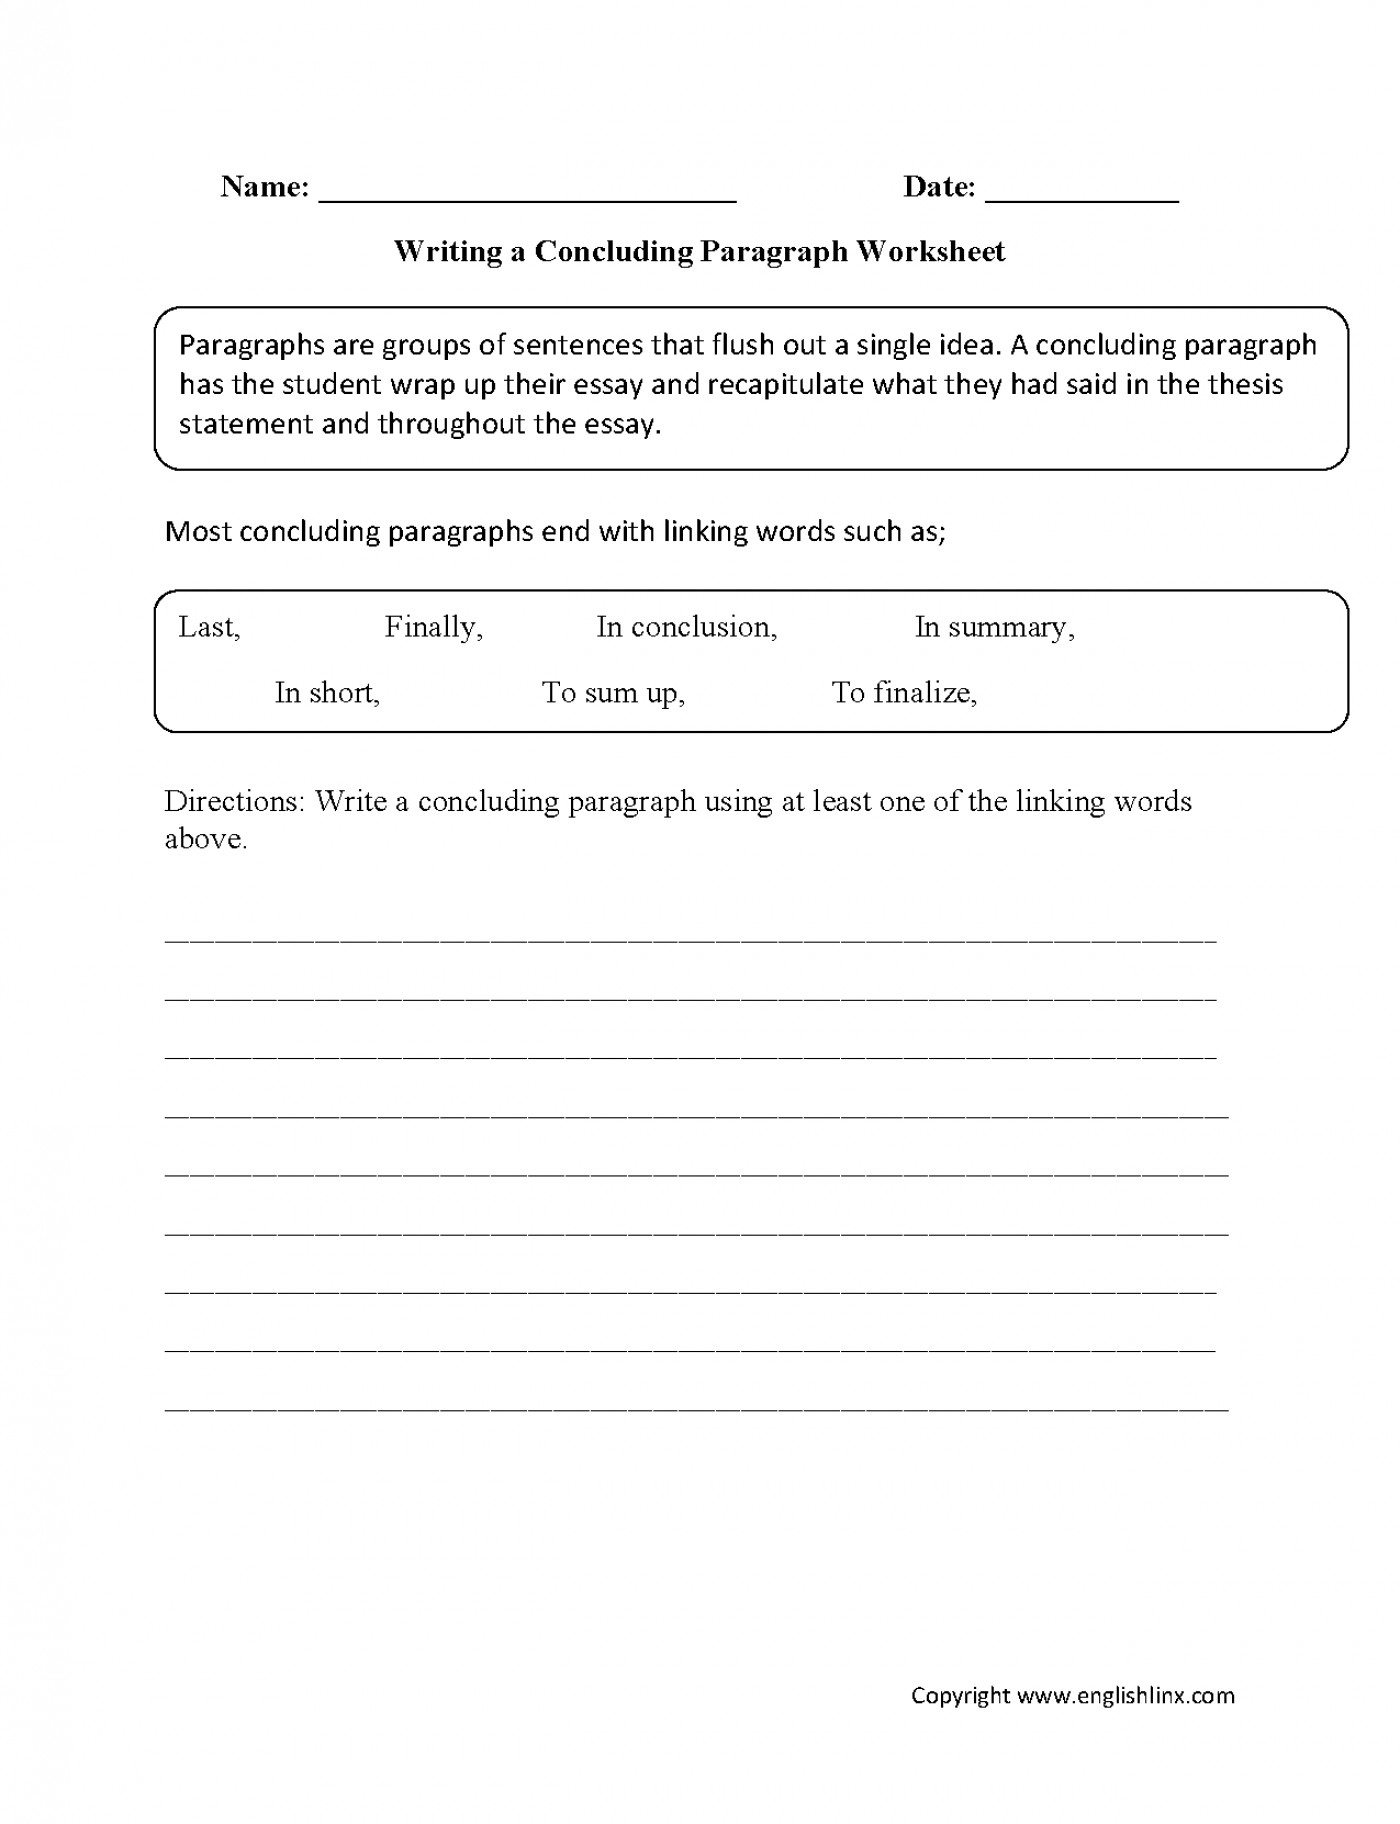 010 Essay Writing Worksheets Thatsnotus